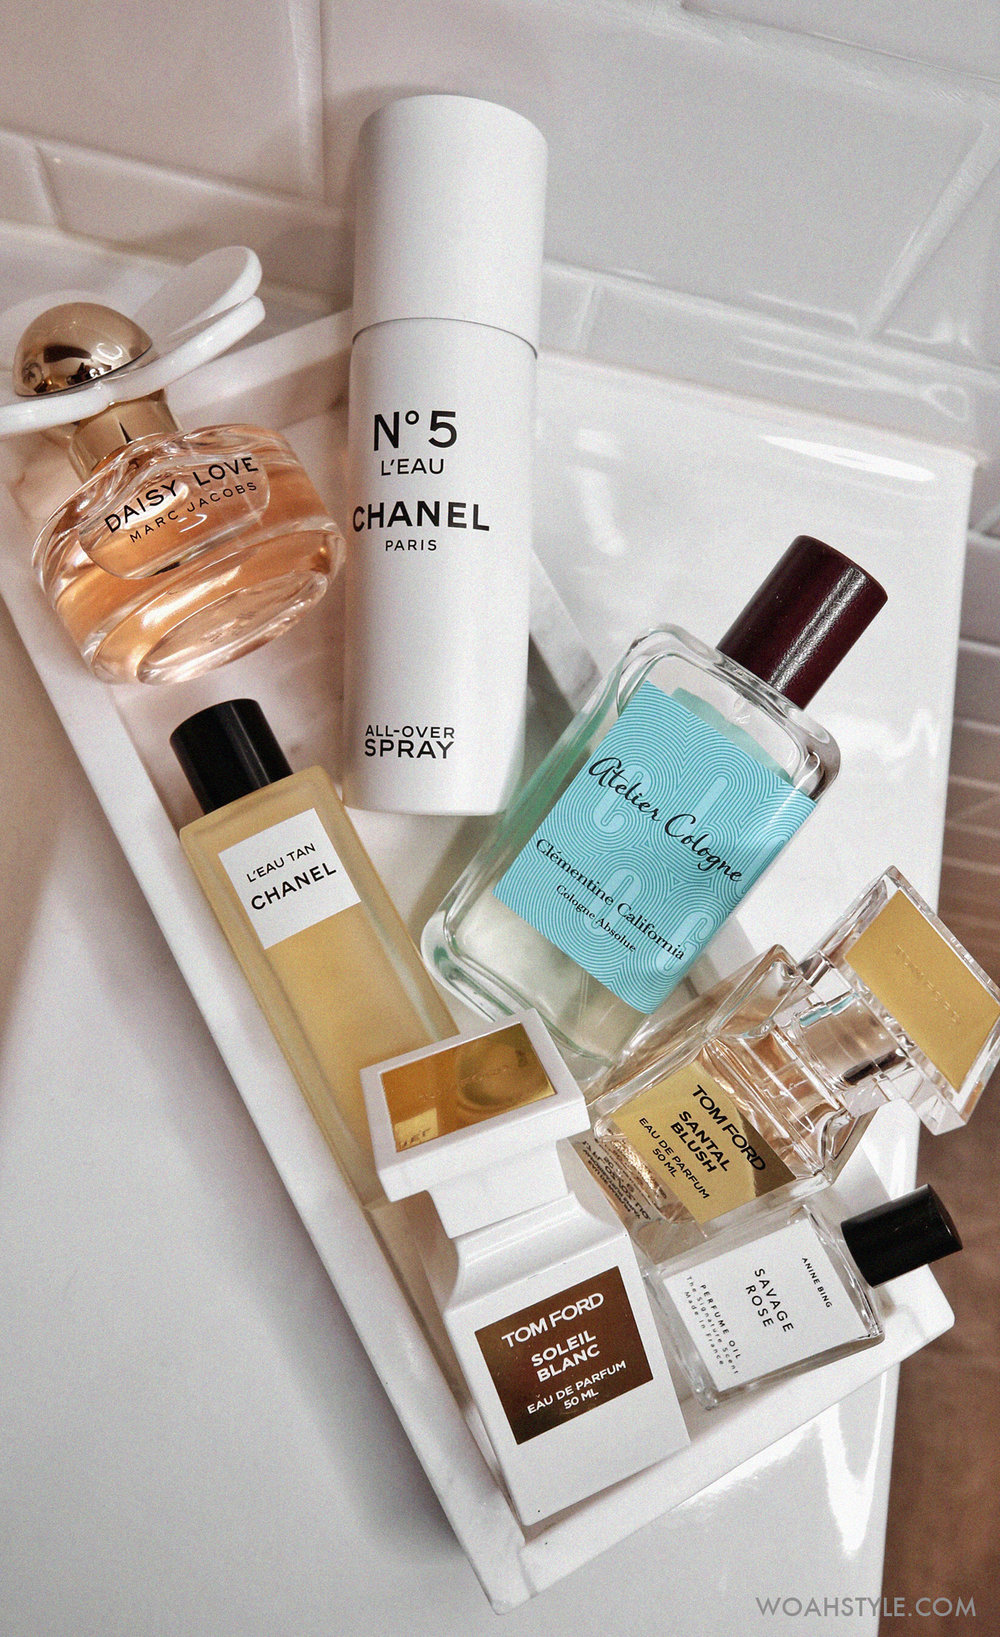 7 FABULOUS SUMMER SCENTS - Marc Jacobs Daisy Love, CHANEL No 5 L'eau, L'eau Tan, Atelier Cologne Clementine California, Tom Ford Santal Blush, Soleil Blanc, Anine Bing, Savage Rose - woahstyle.com - nathalie martin.jpg